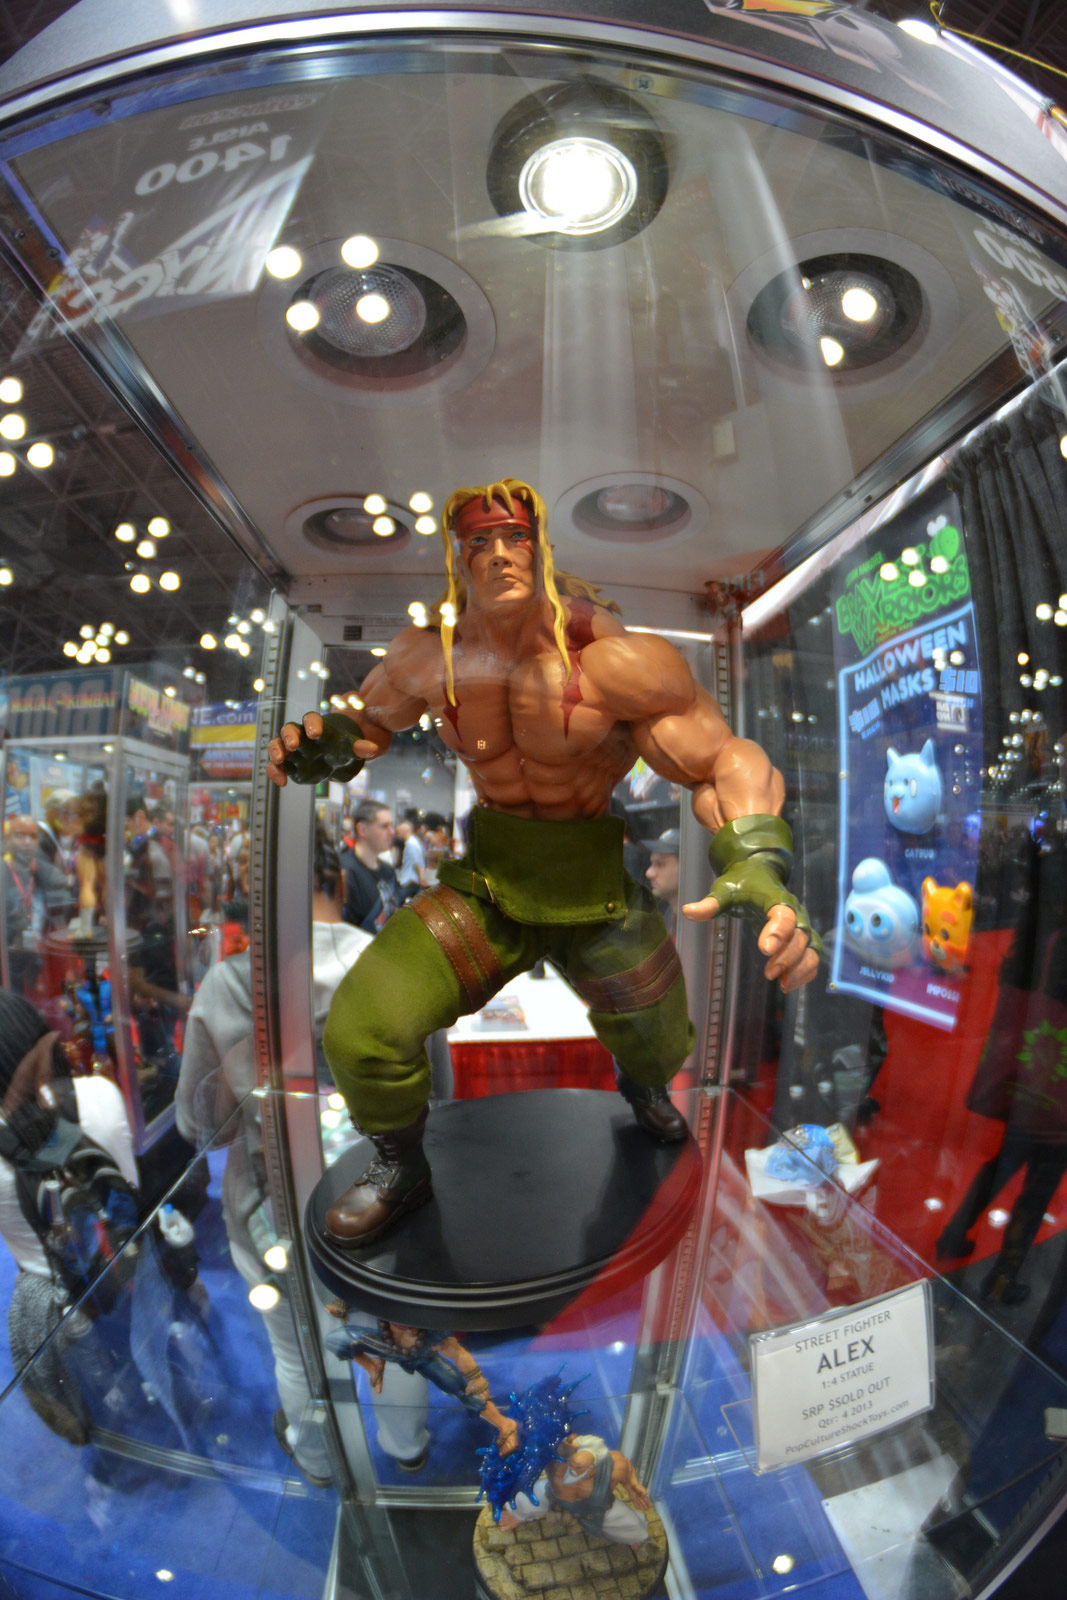 Statue photo from the 2013 New York Comic-Con by Jason24cf #9